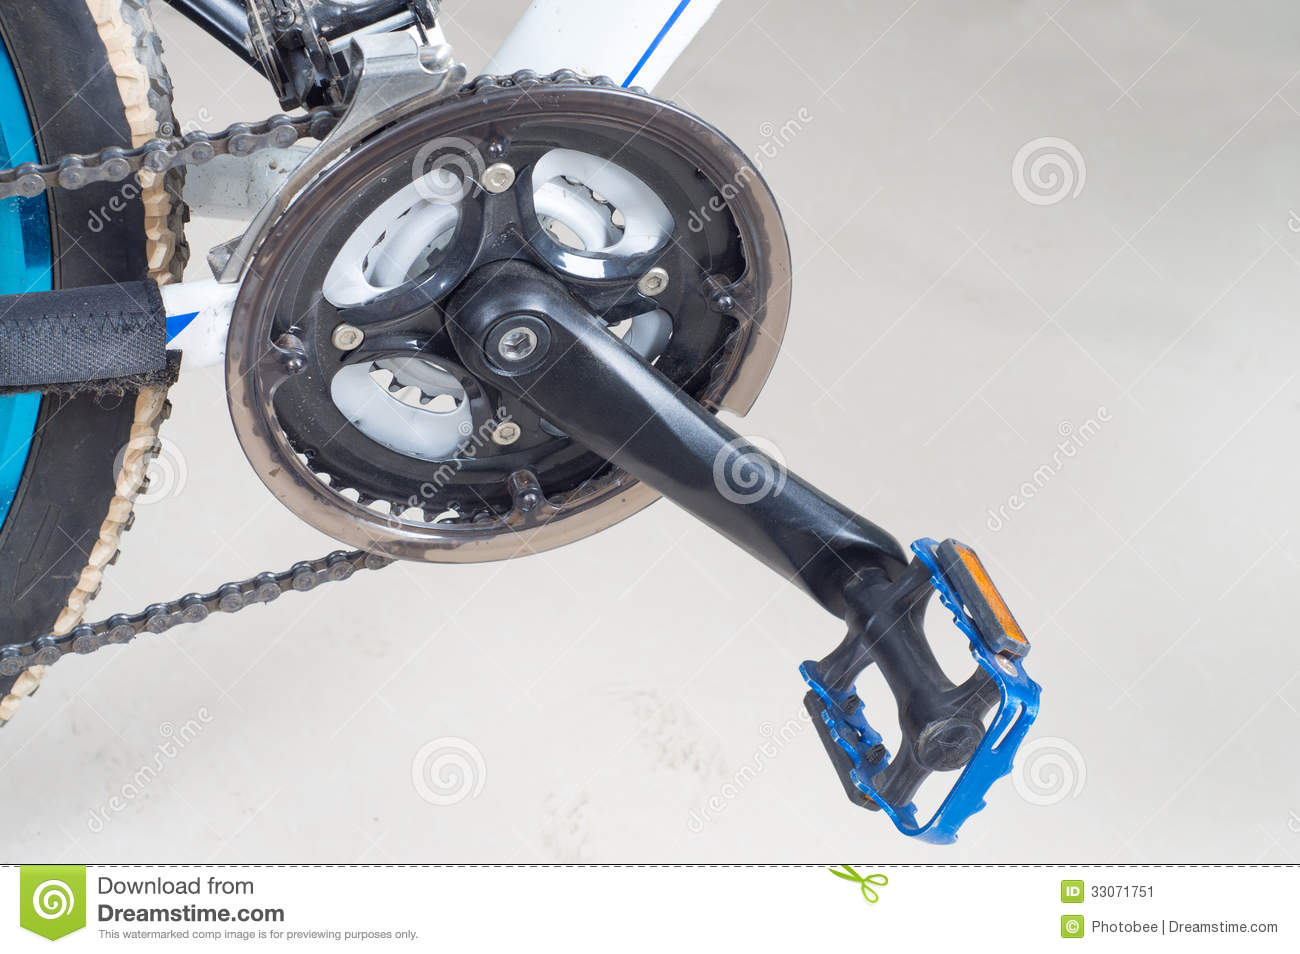 Bike close up on gear wheel, pedal and wheel.